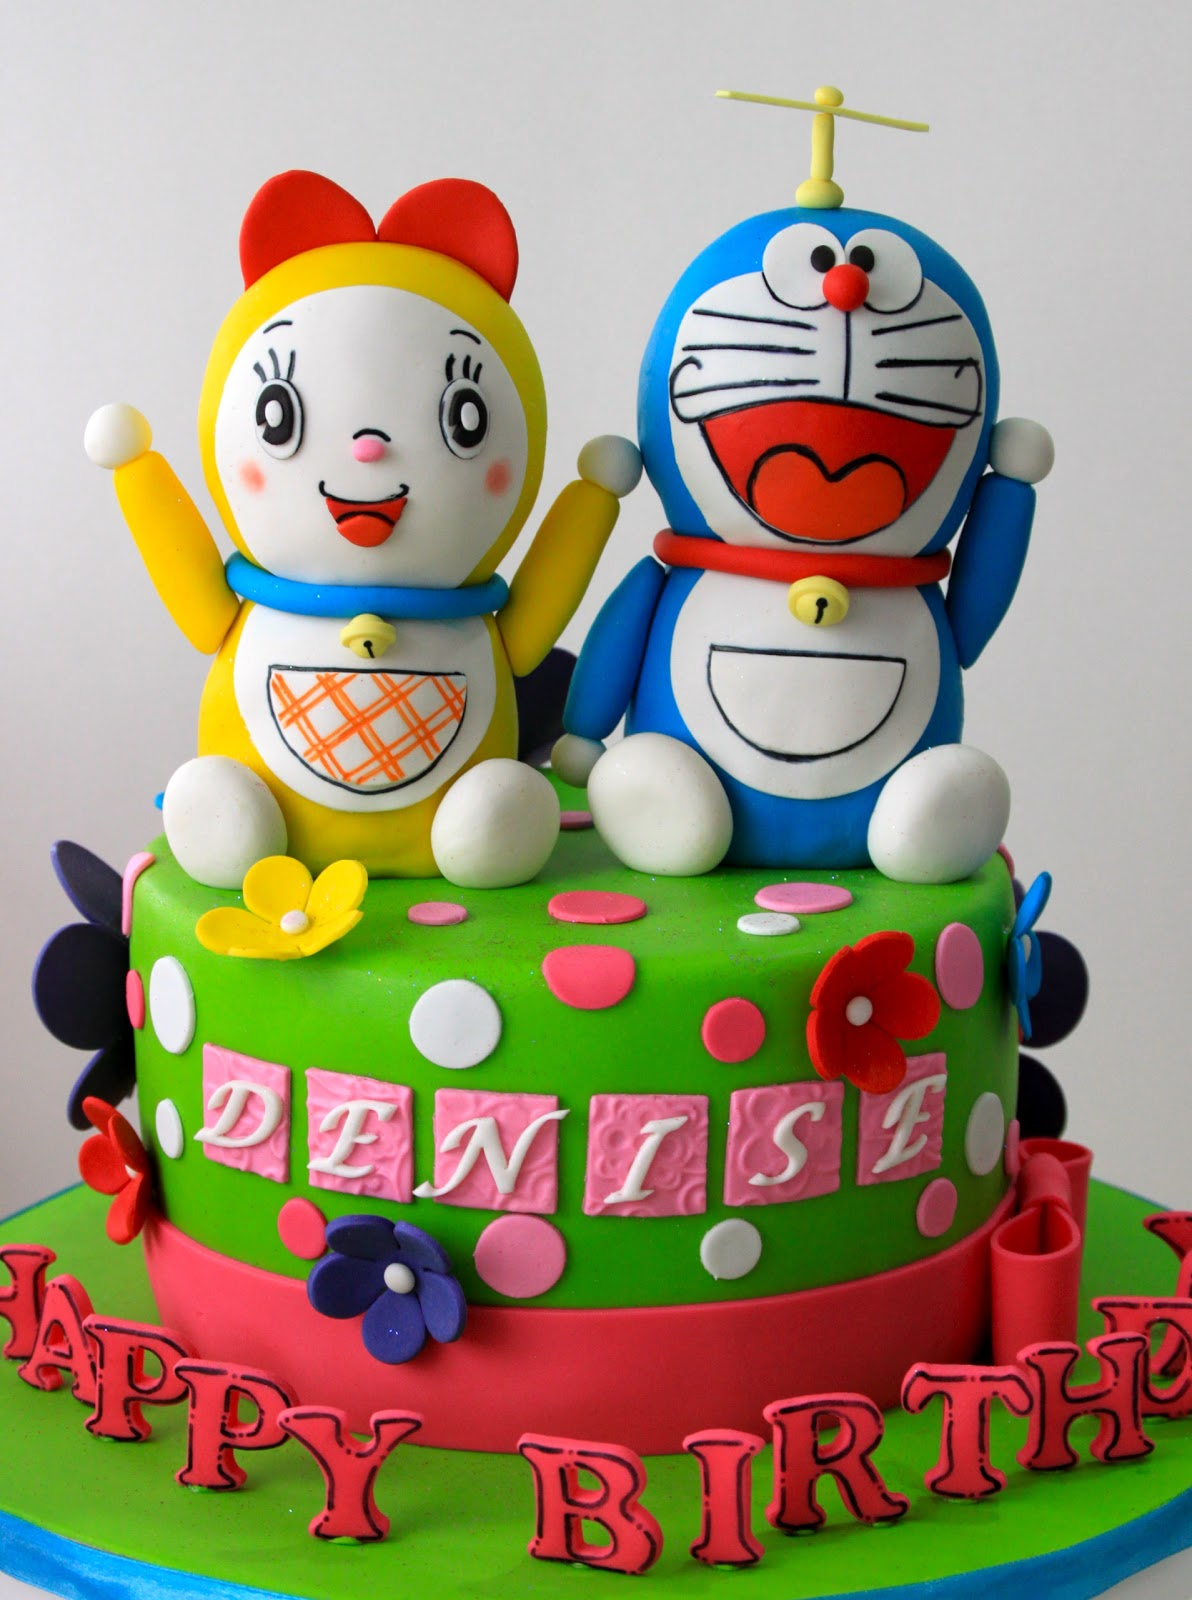 Doraemon: Dorami - Images Gallery